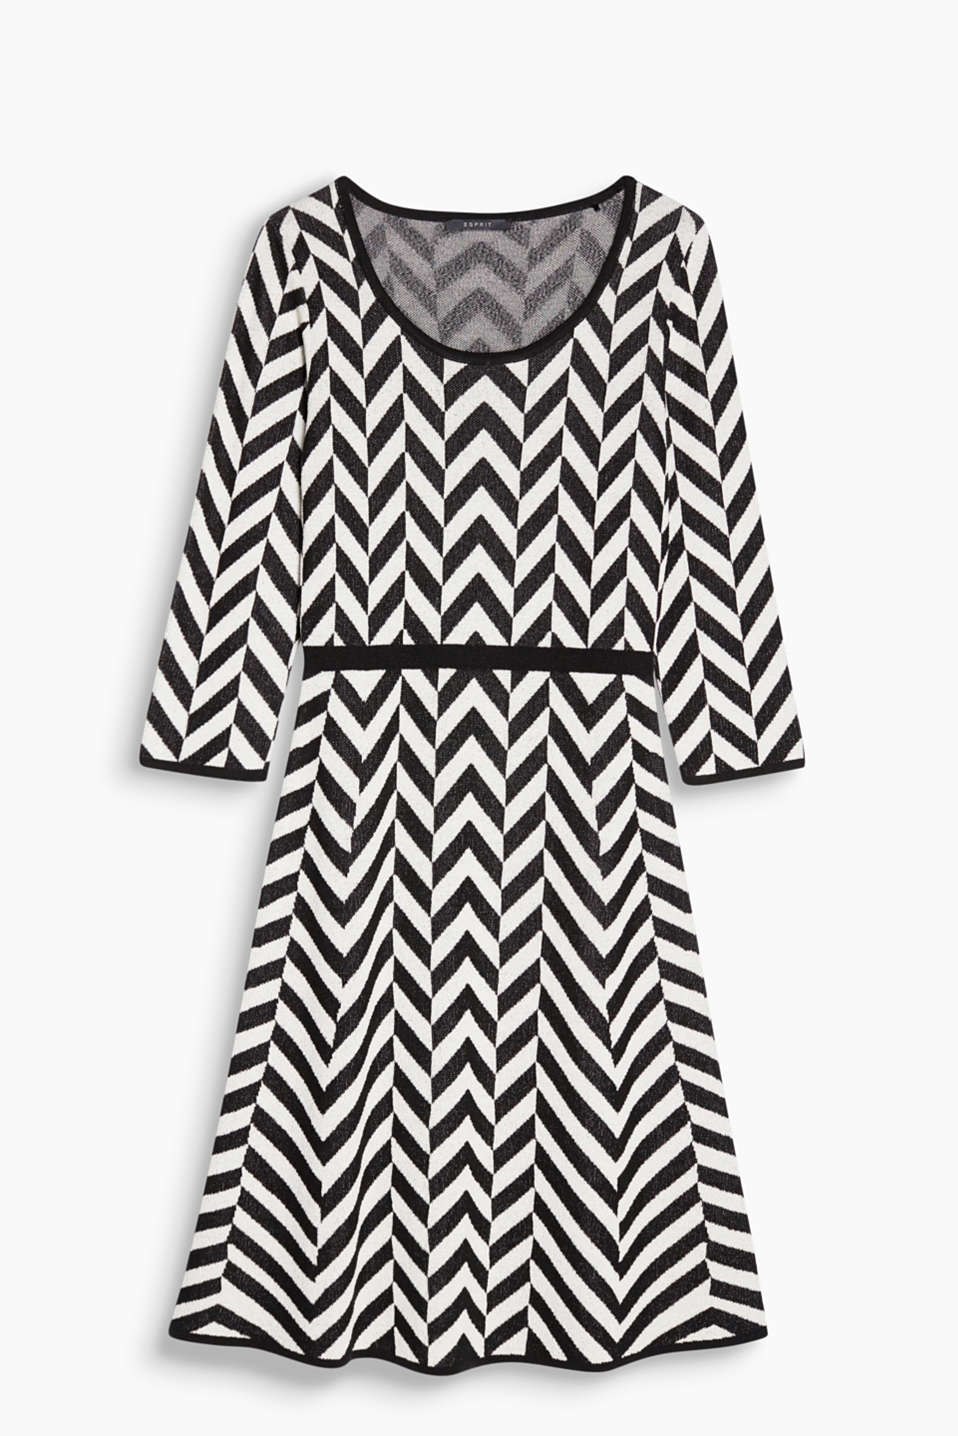 Geometric patterns can look so feminine: knitted dress with a flared skirt and zigzag pattern